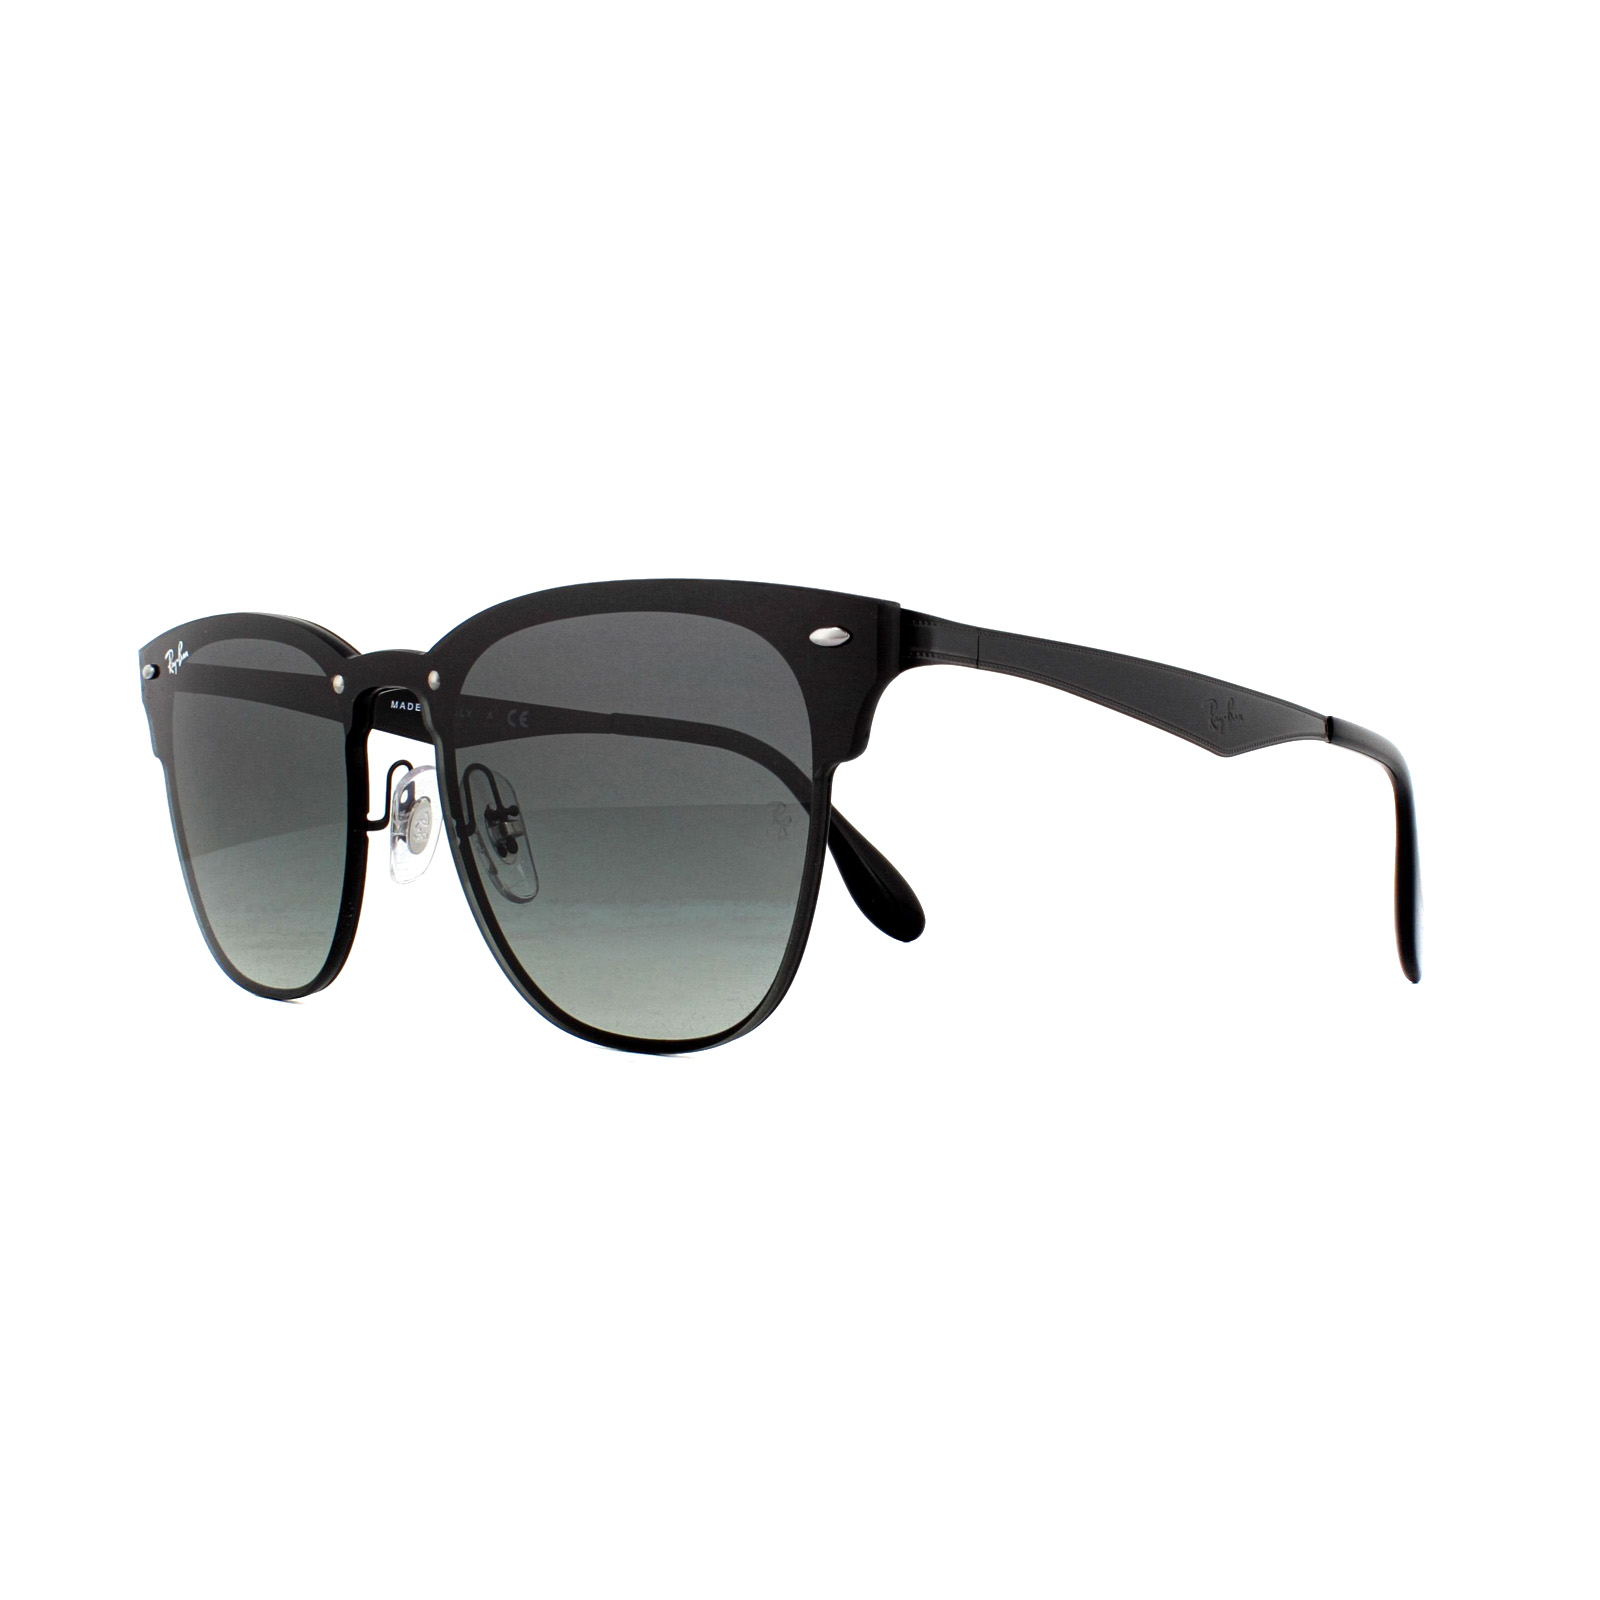 ddbf776e02 Details about Ray-Ban Sunglasses Blaze Clubmaster 3576N 153 11 Demi Gloss  Black Gradient Grey